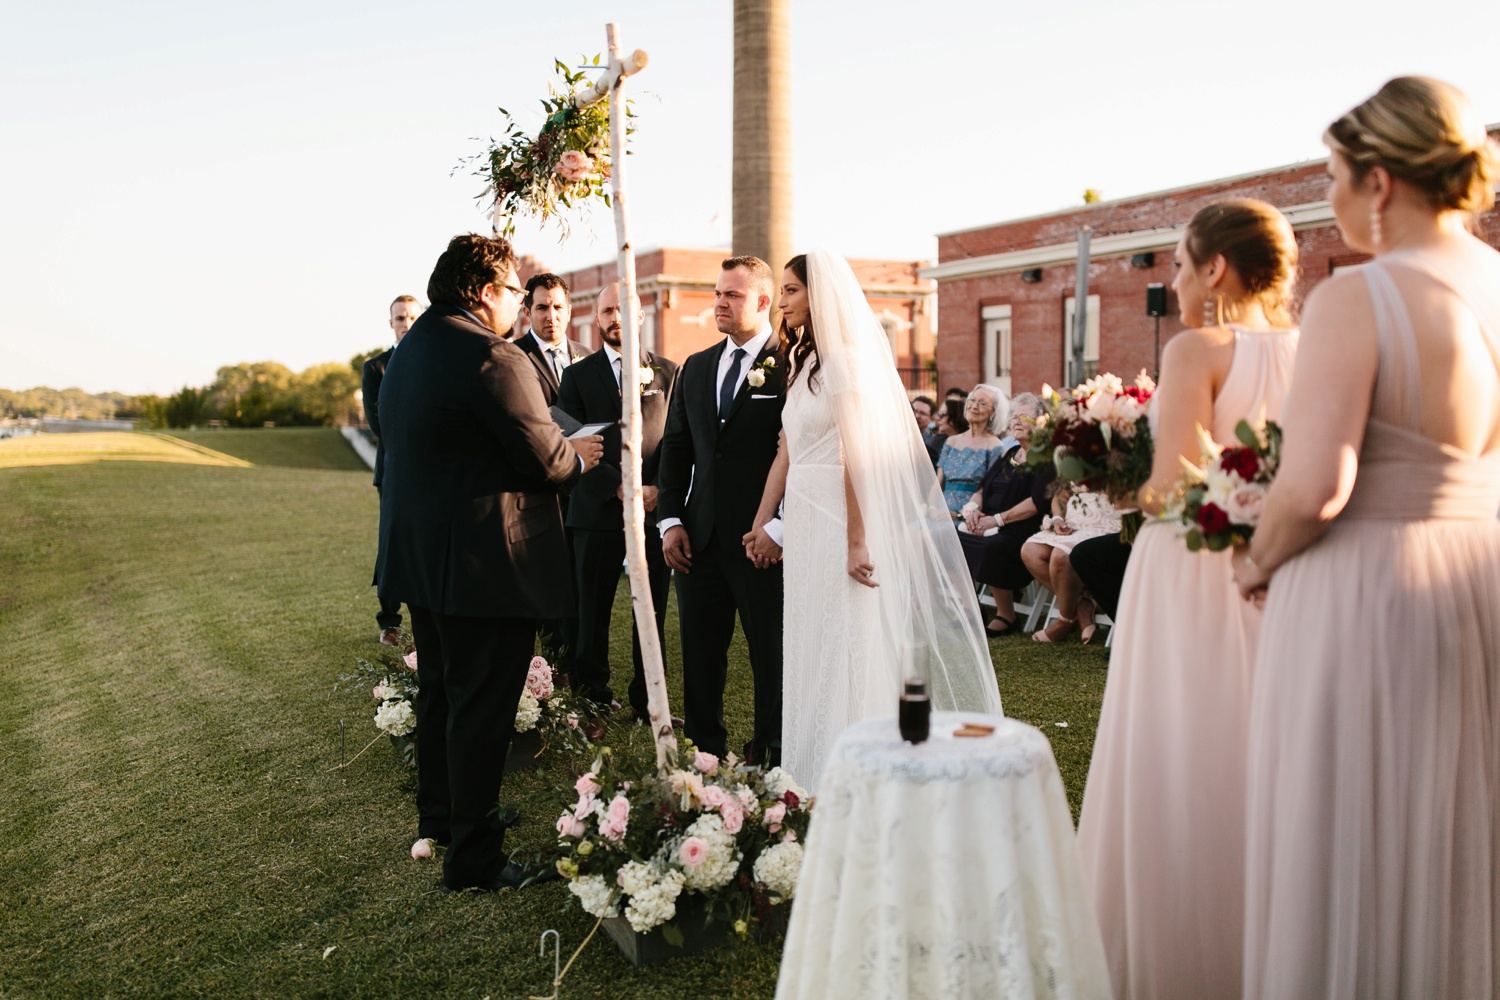 Kadee + Tyler | a raw, emotional wedding at the Filter Building on White Rock Lake in Dallas, TX by North Texas Wedding Photographer, Rachel Meagan Photography 135